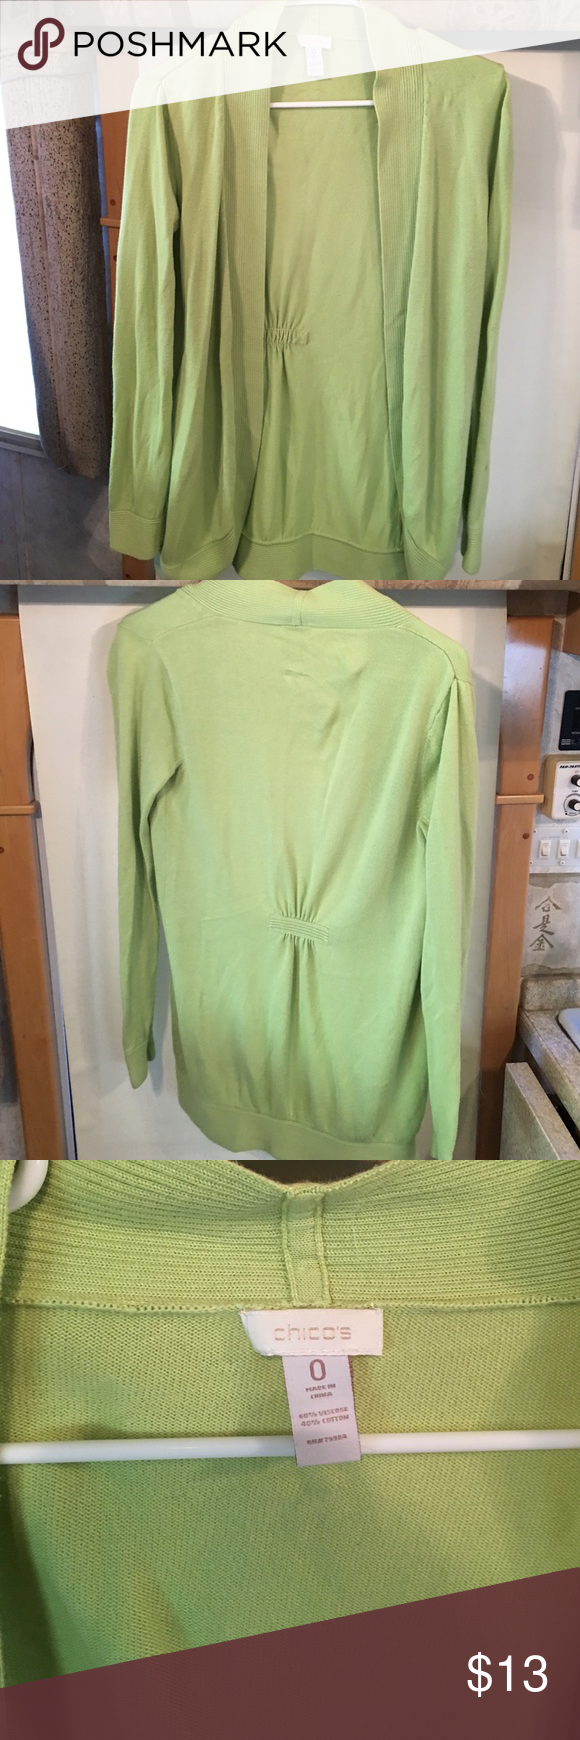 Chico's - Lime Green Cardigan - Size Small | Sweater cardigan ...